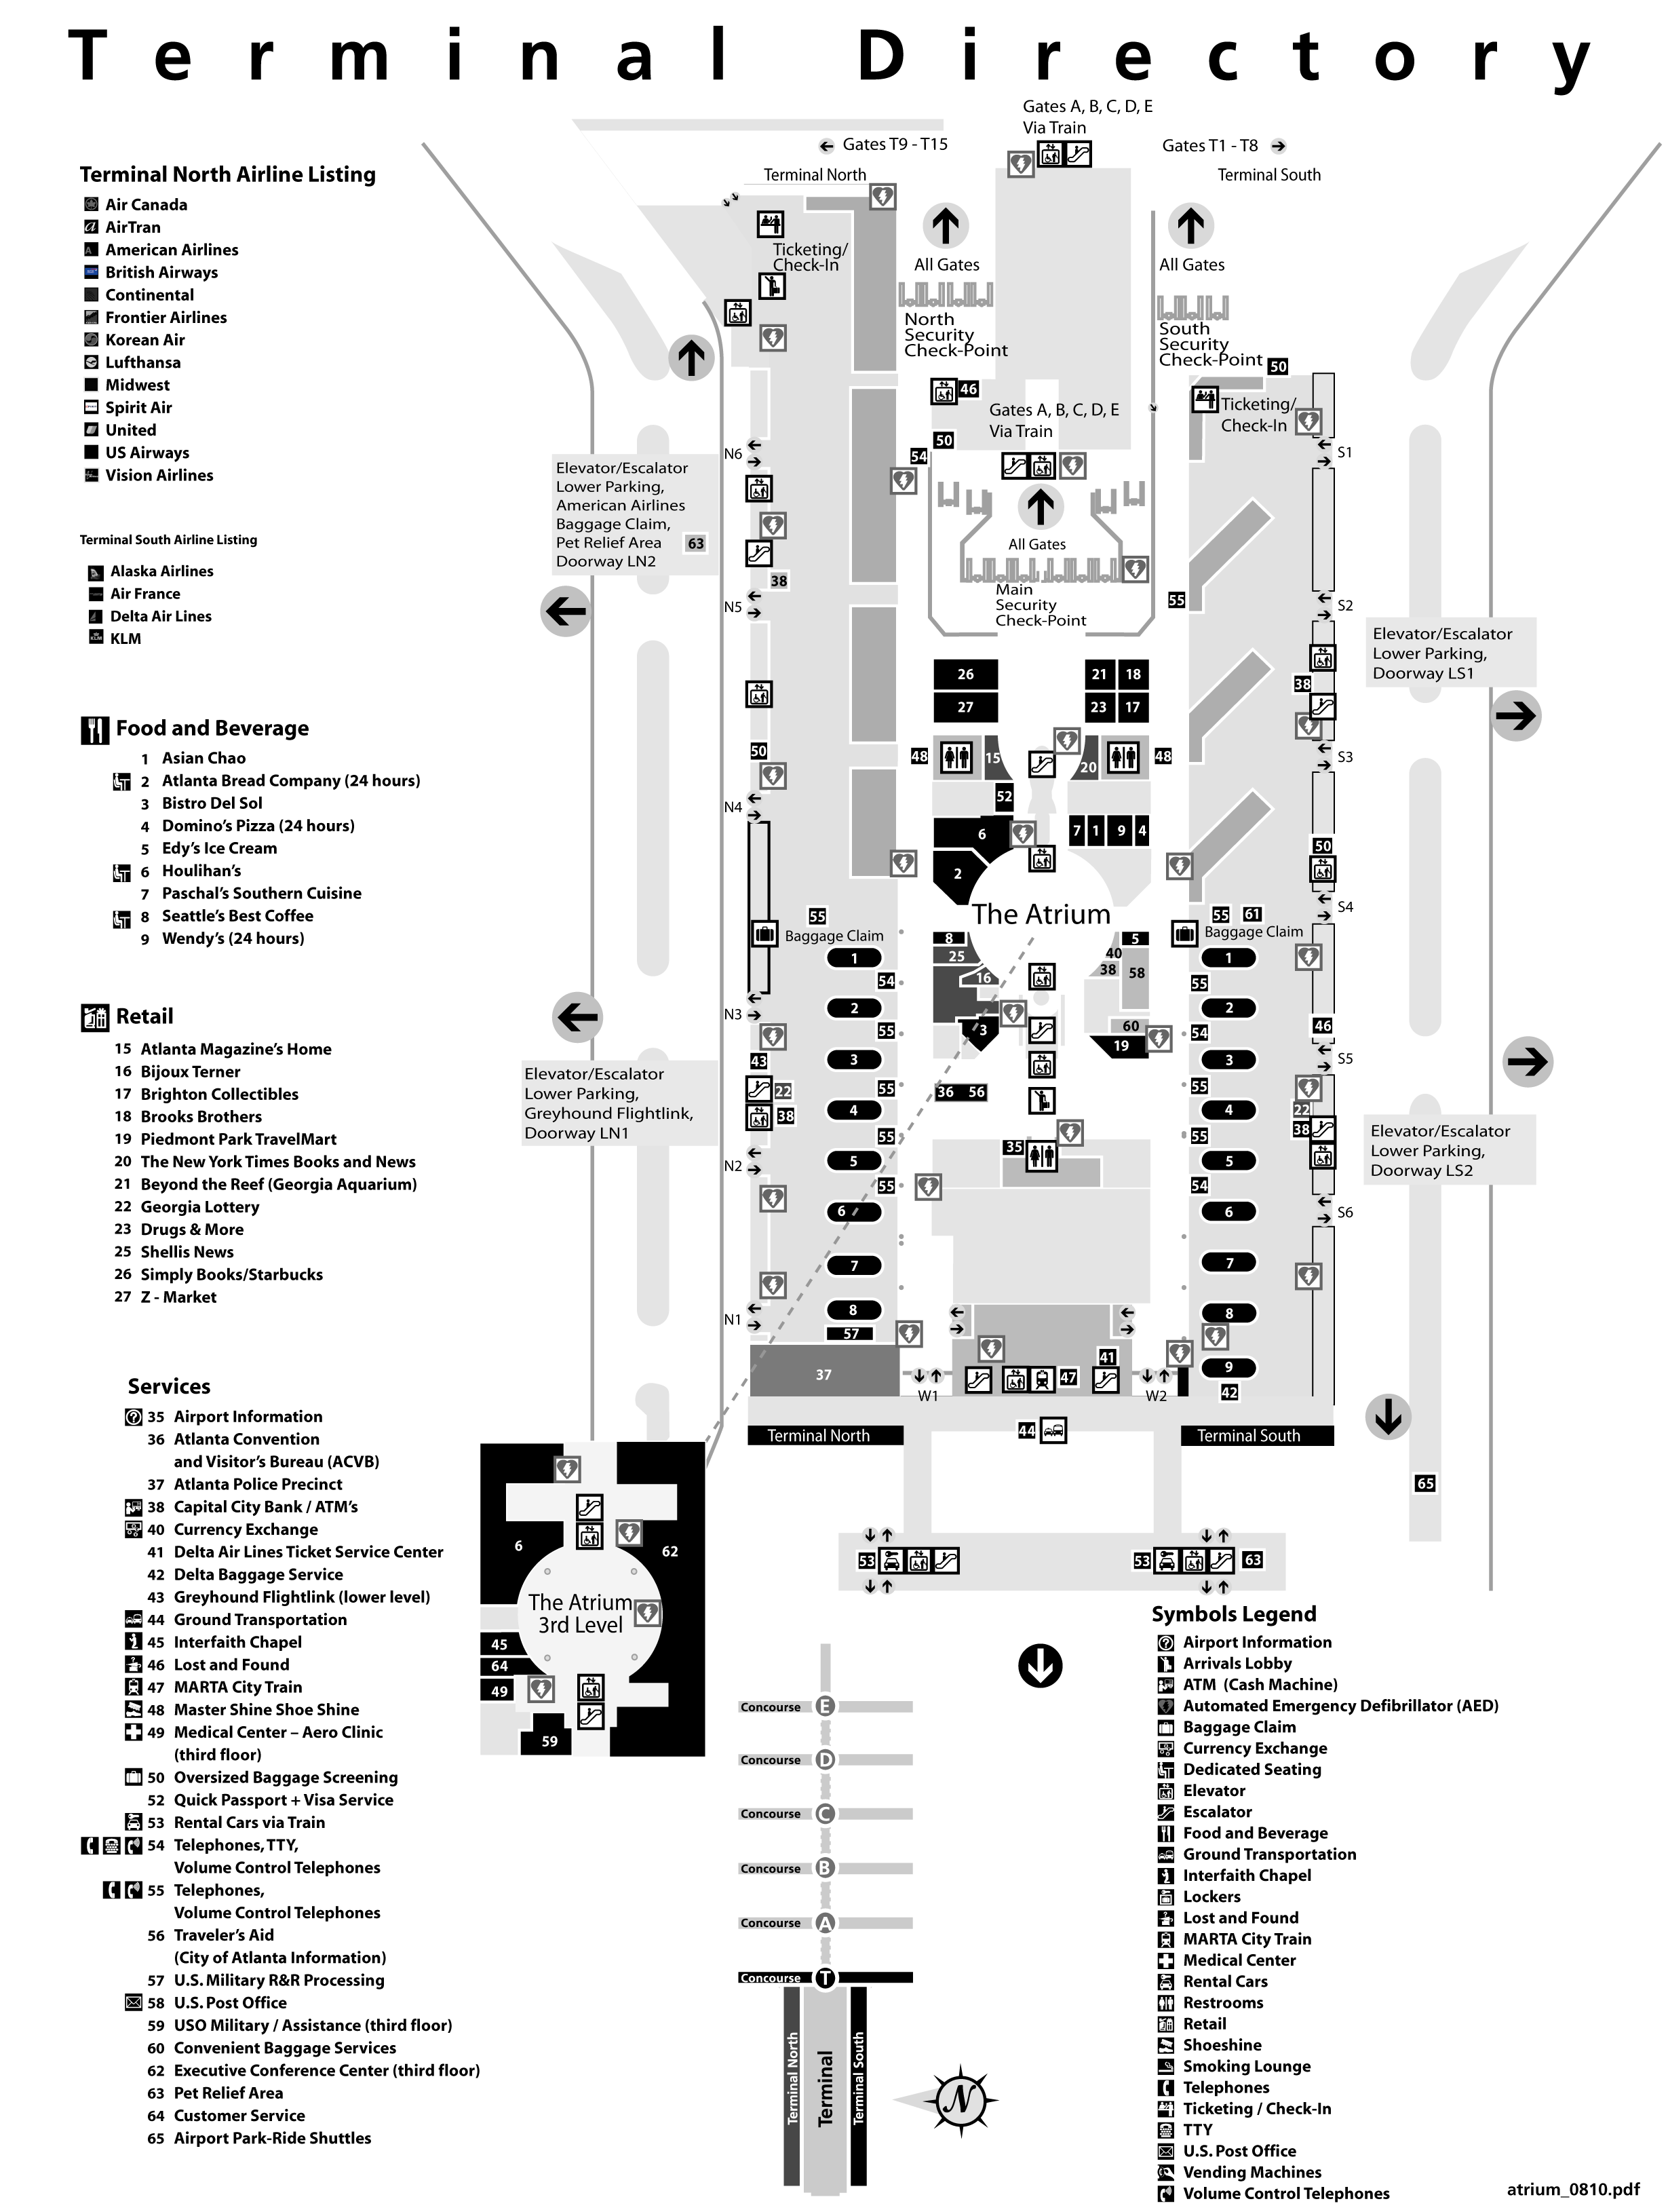 Atlanta Airport terminal map Can I go NOW PLEASE Pinterest